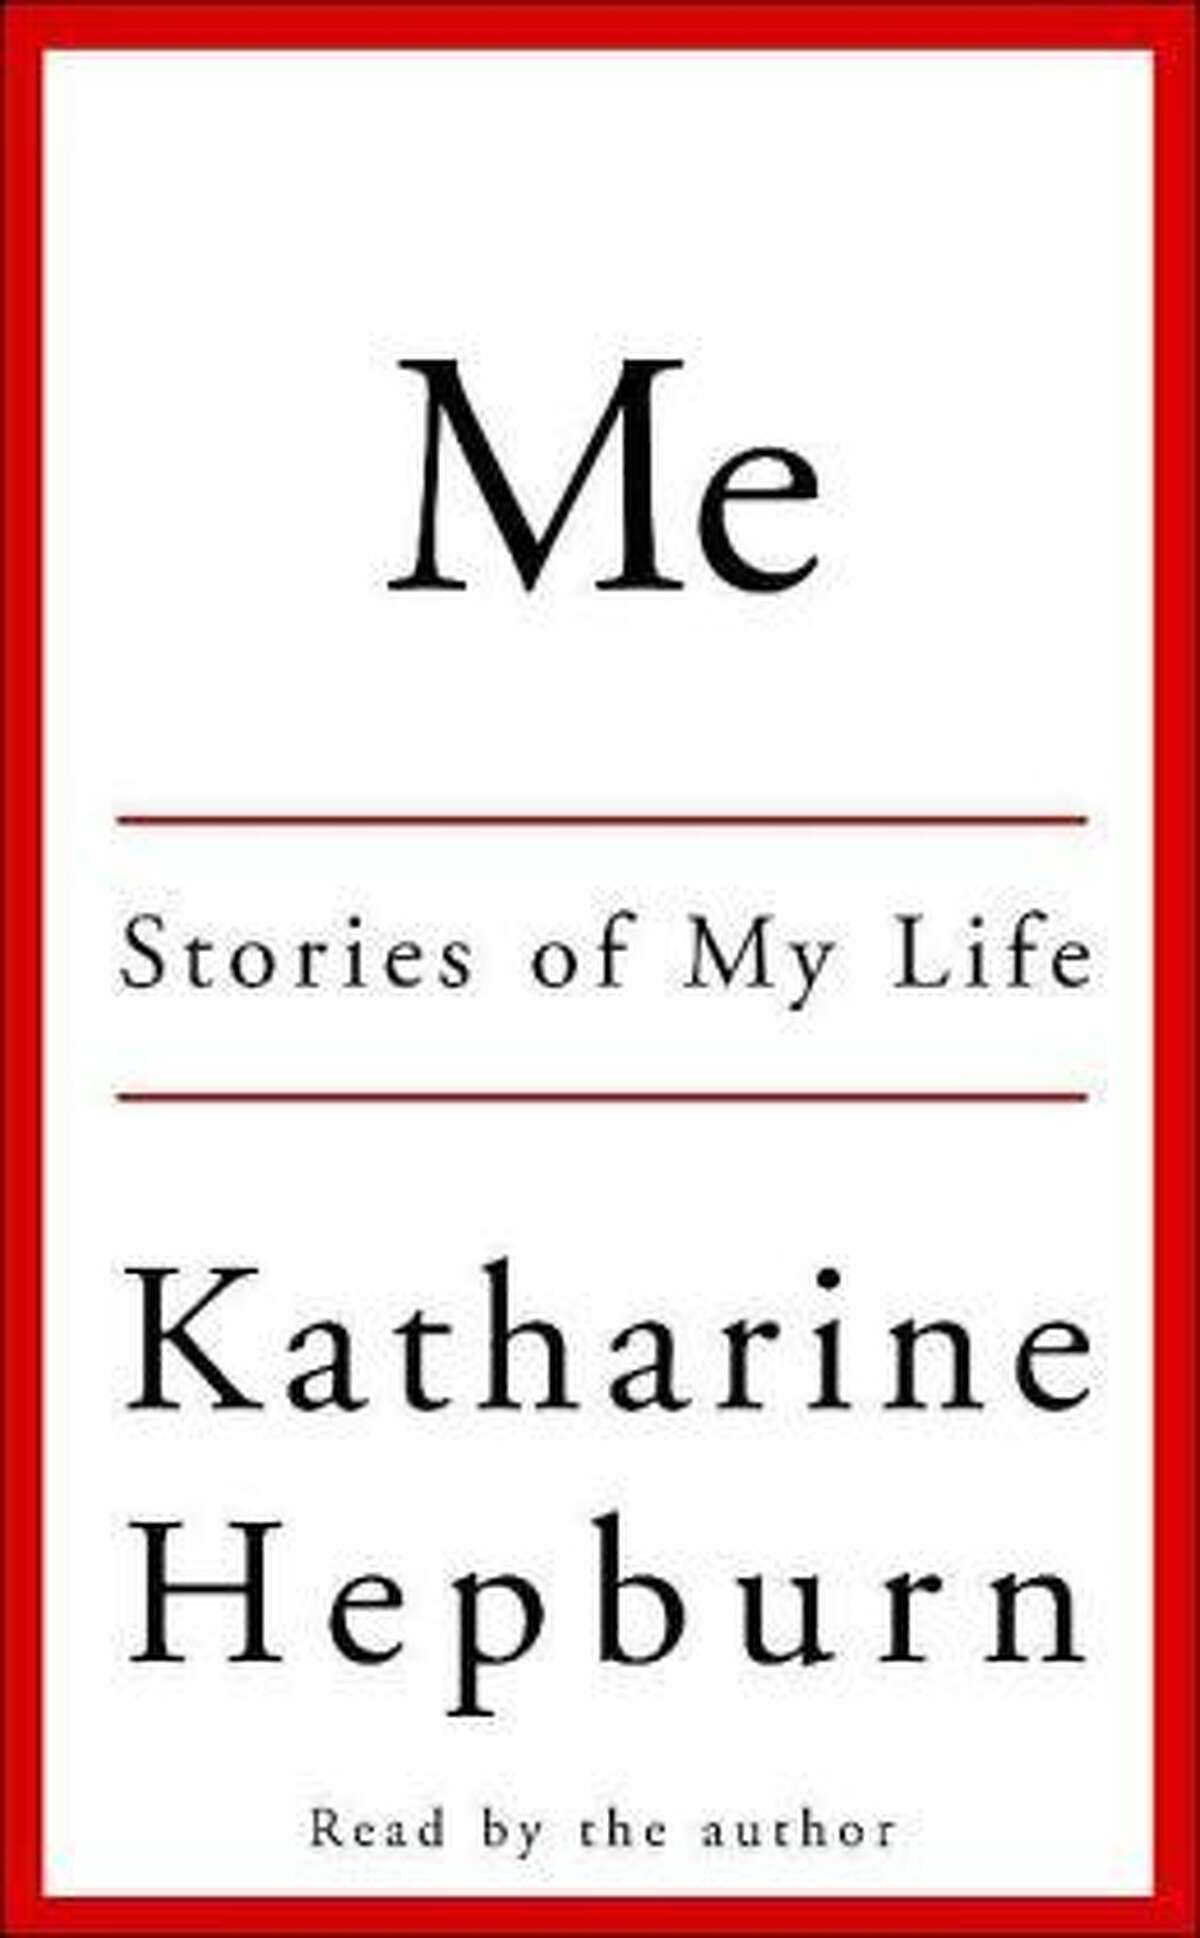 1. I was Katherine Hepburn's book publicist for her autobiography. When the publisher I worked for decided not to put her picture on the cover of the paperback edition, I was sent over to her townhouse to break the news. This did not go over well with Miss Hepburn.